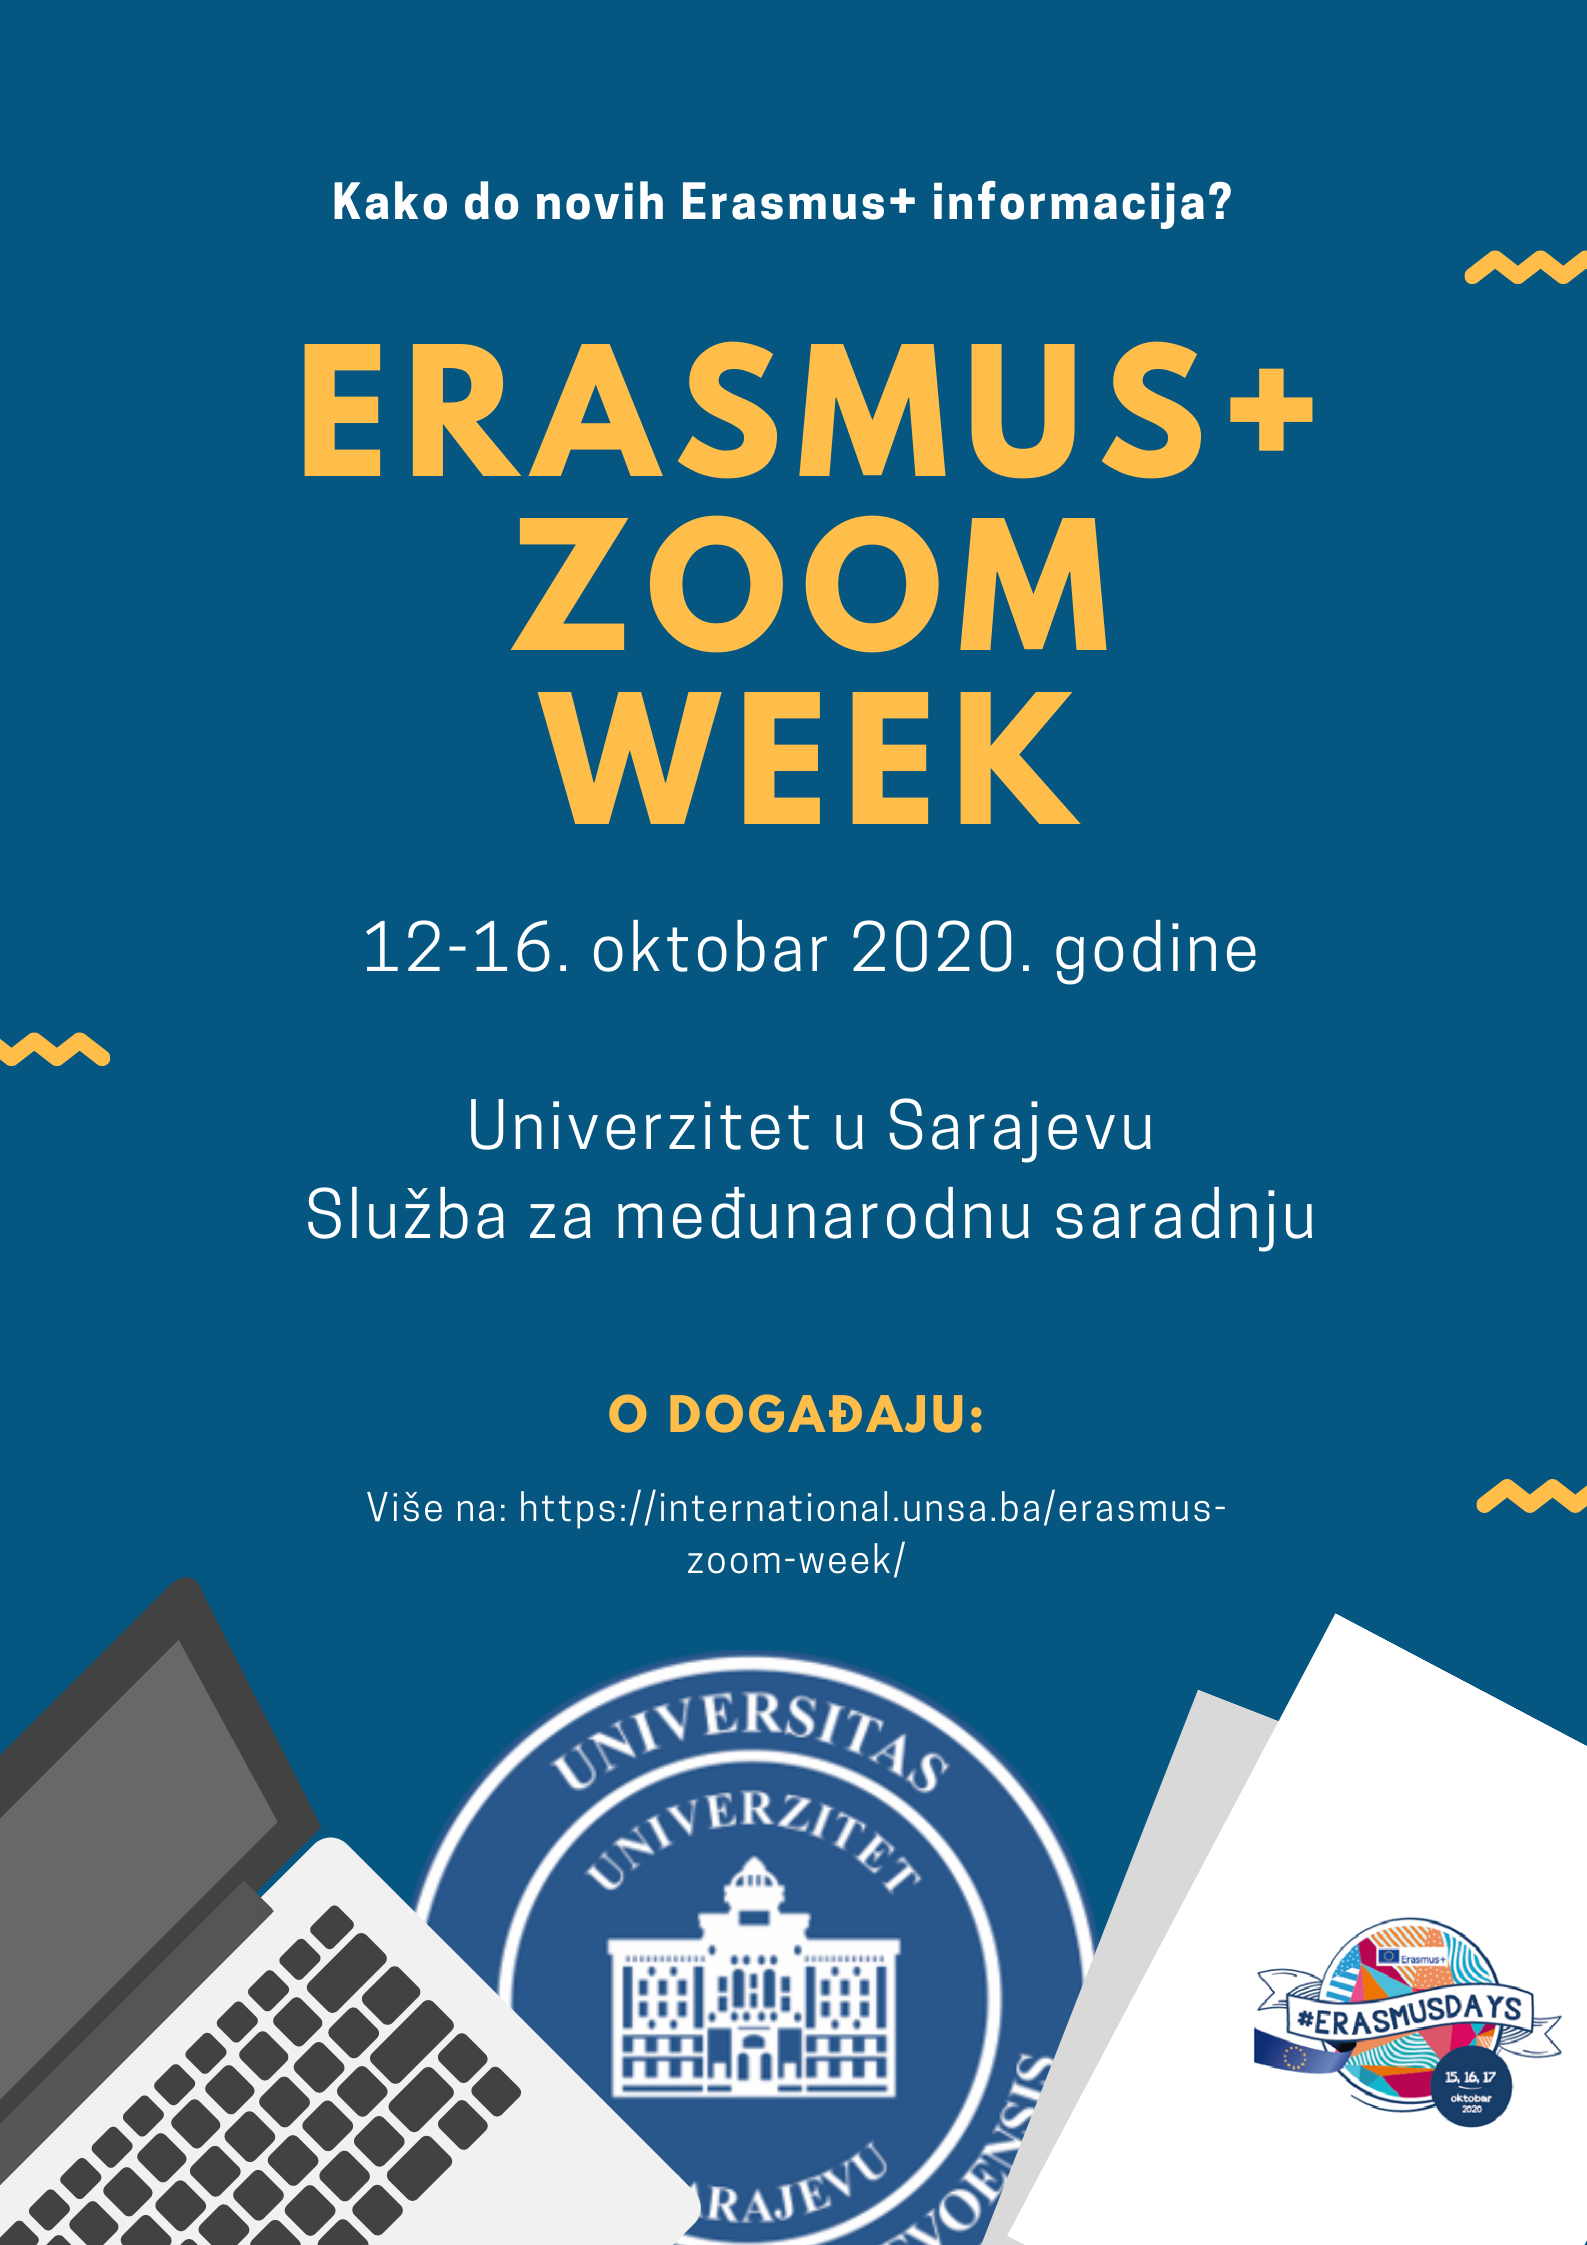 Erasmus+ ZOOM week